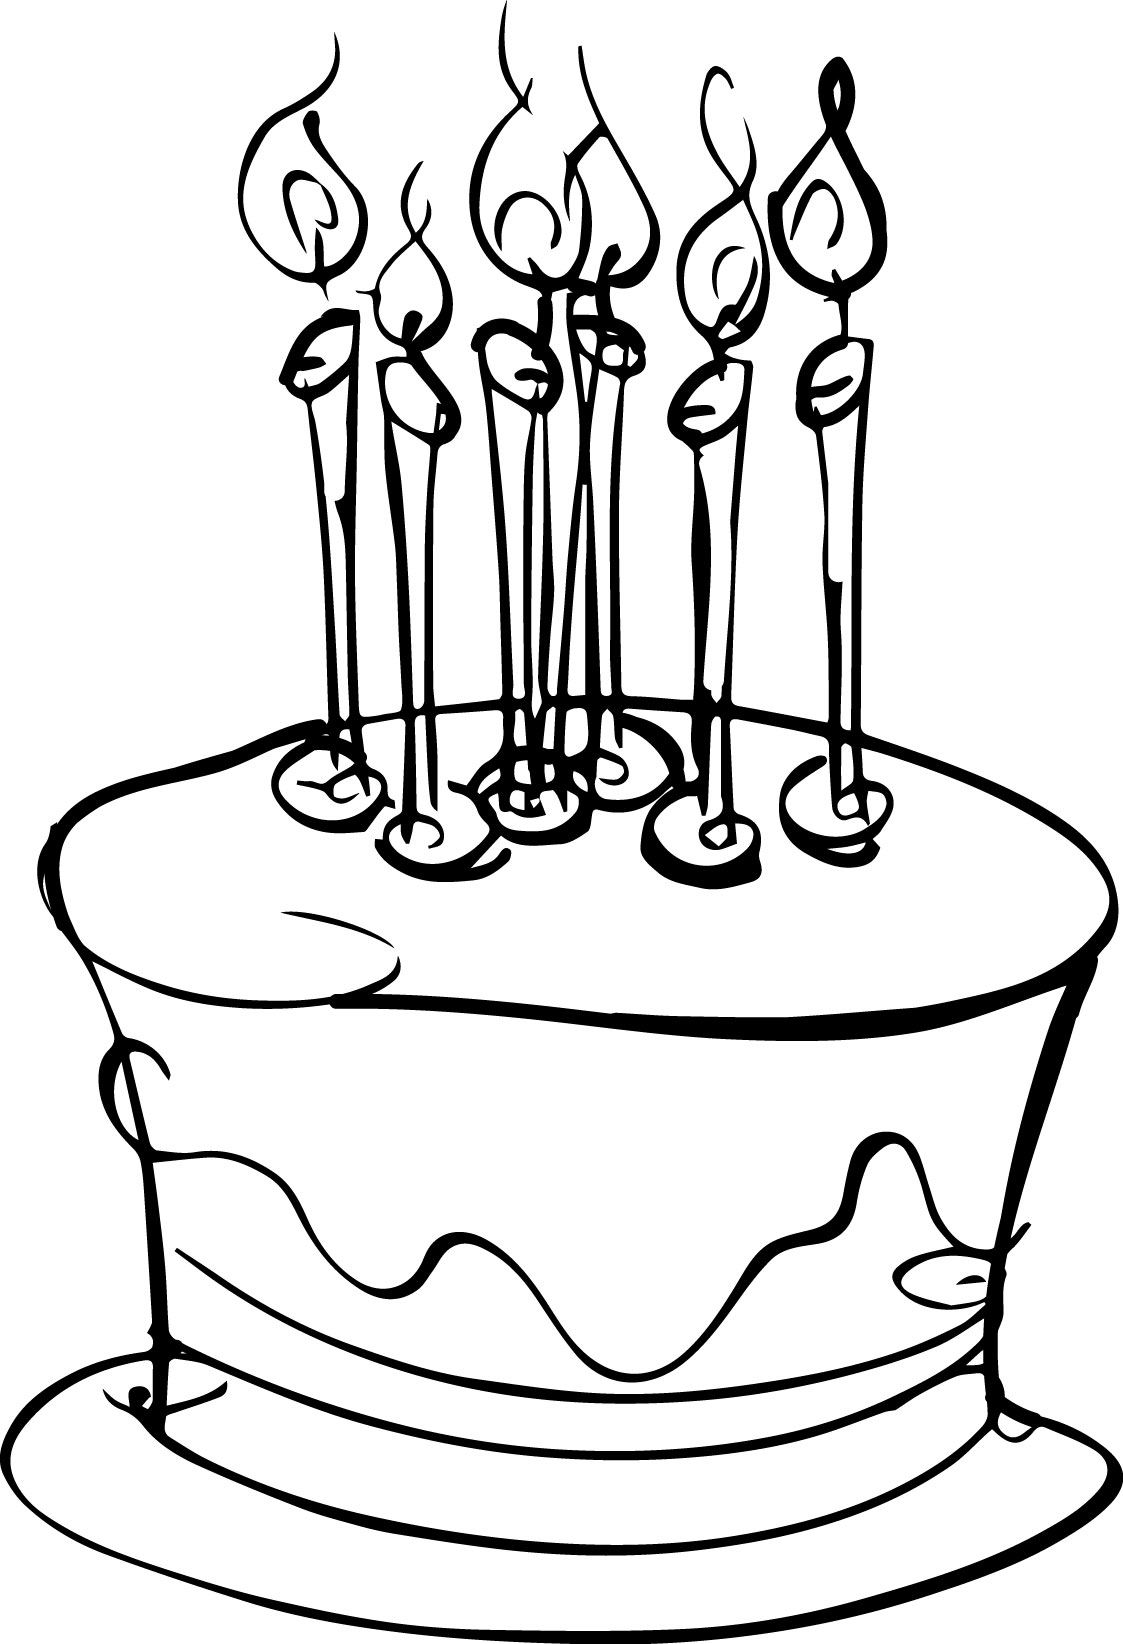 Small Birthday Cake Coloring Page | Wecoloringpage.com